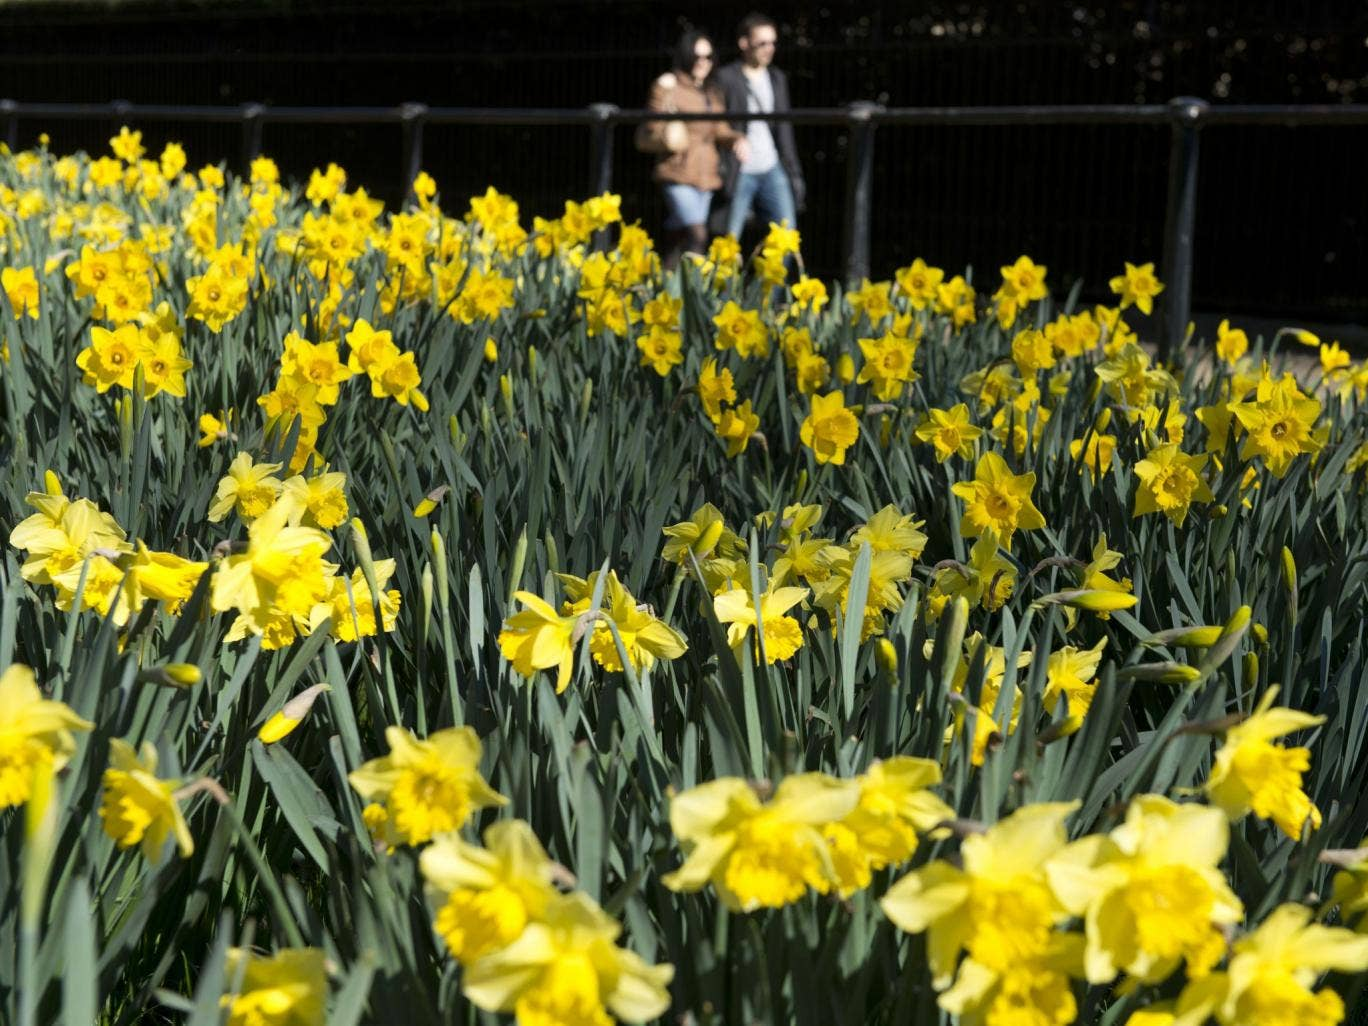 People enjoying the spring sunshine in central London, Sunday 16 March